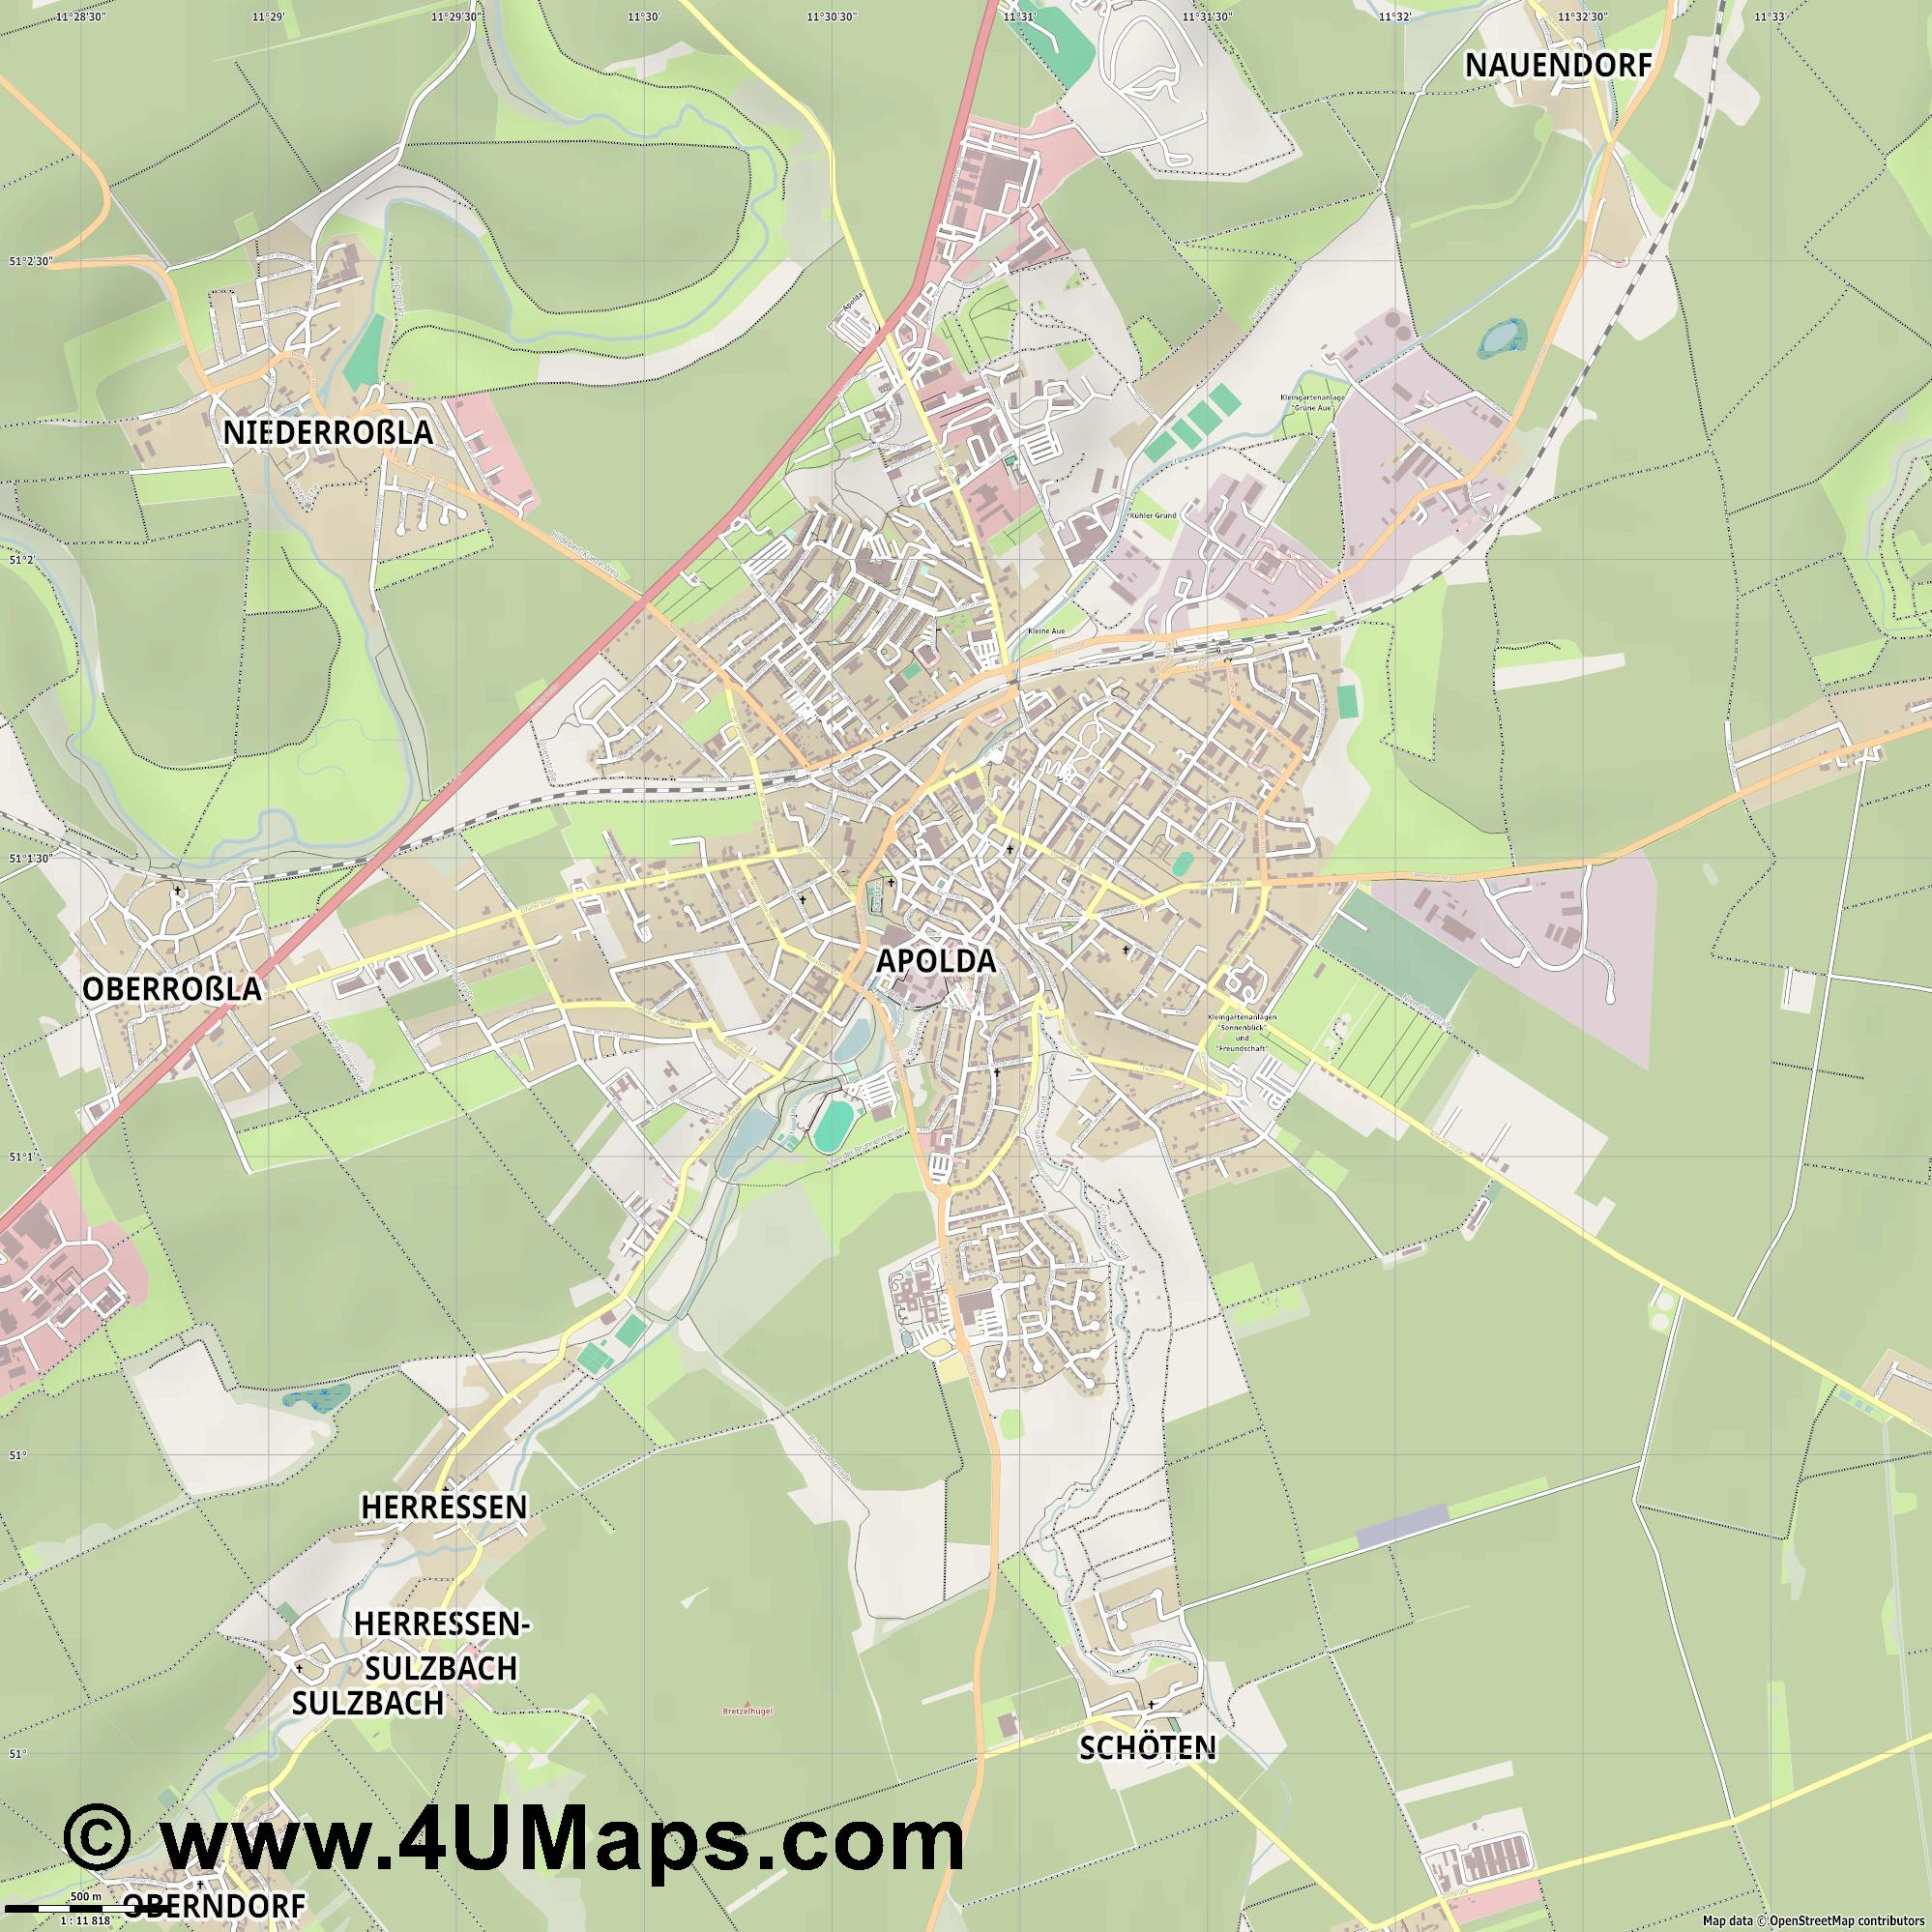 Apolda  jpg ultra high detail preview vector city map